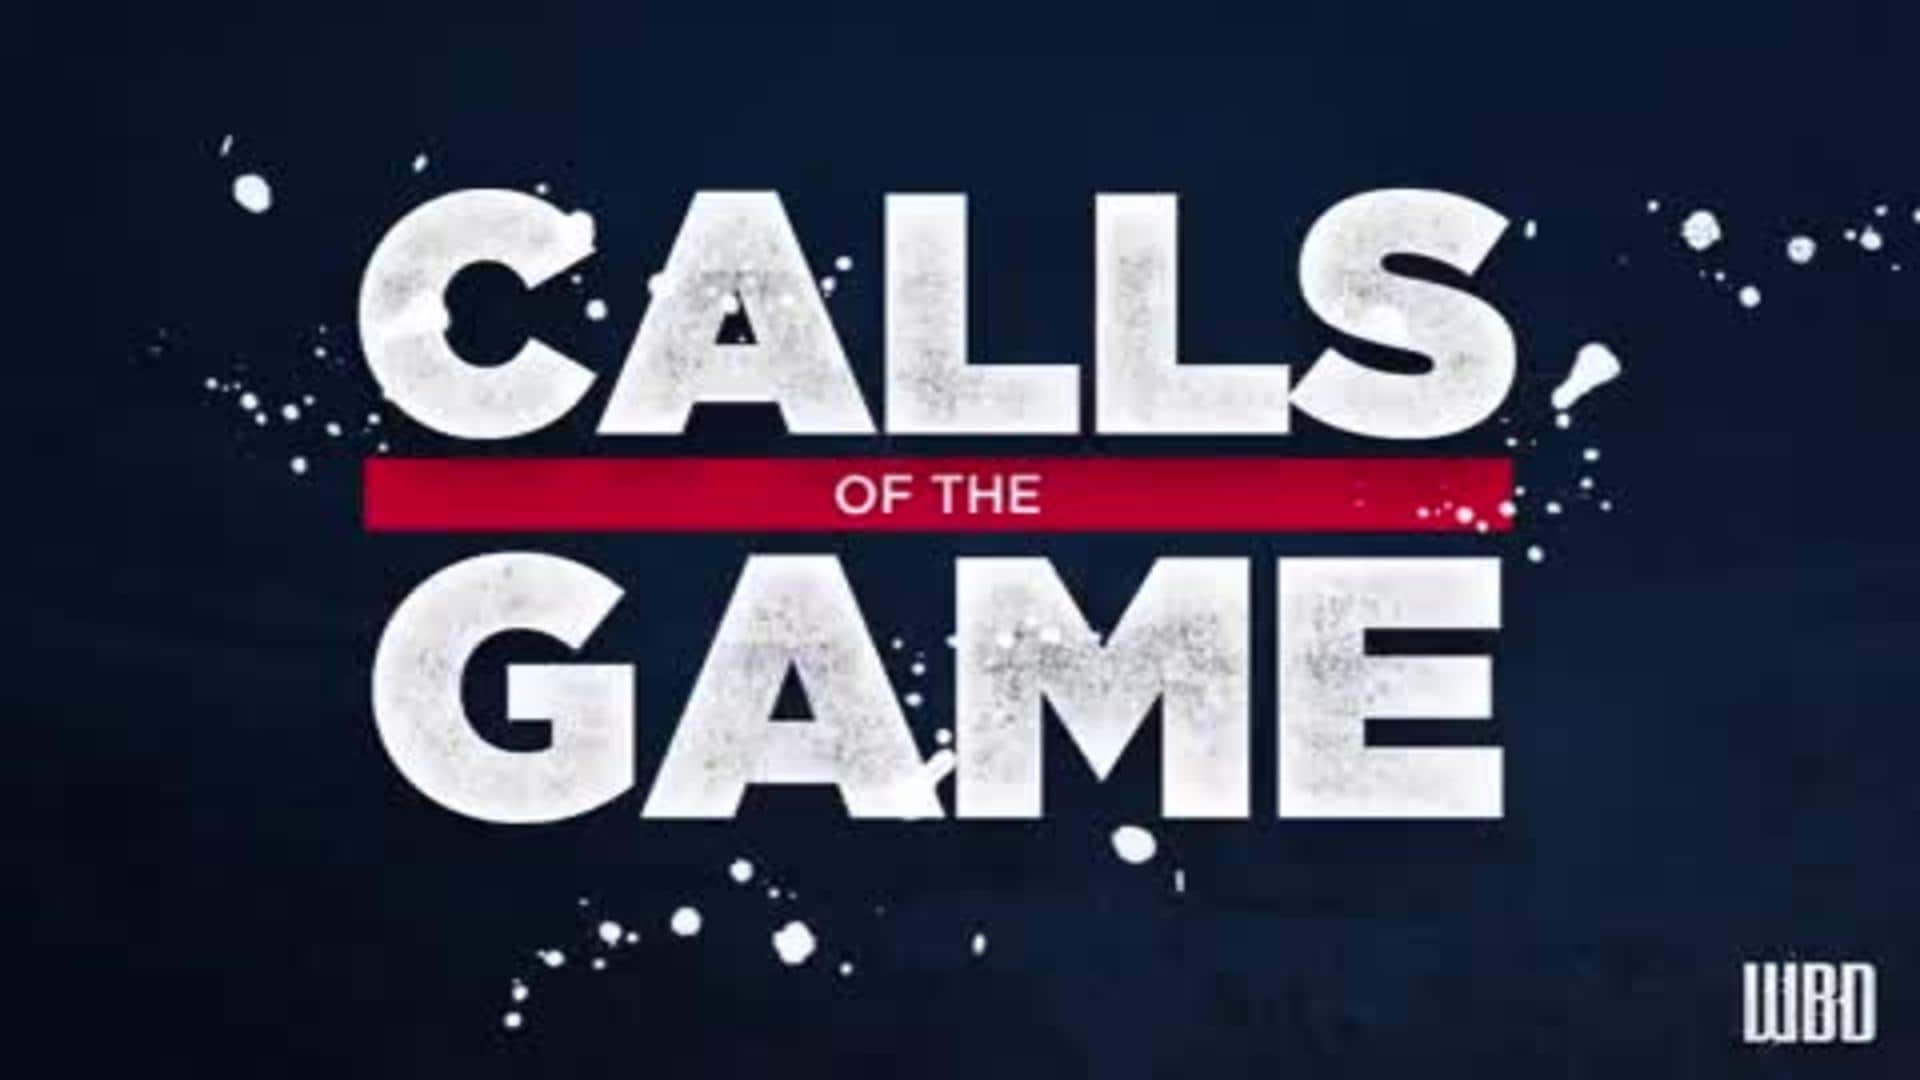 Calls of the Game: New Orleans Pelicans vs Boston Celtics - Game 47 - Jan. 26, 2020